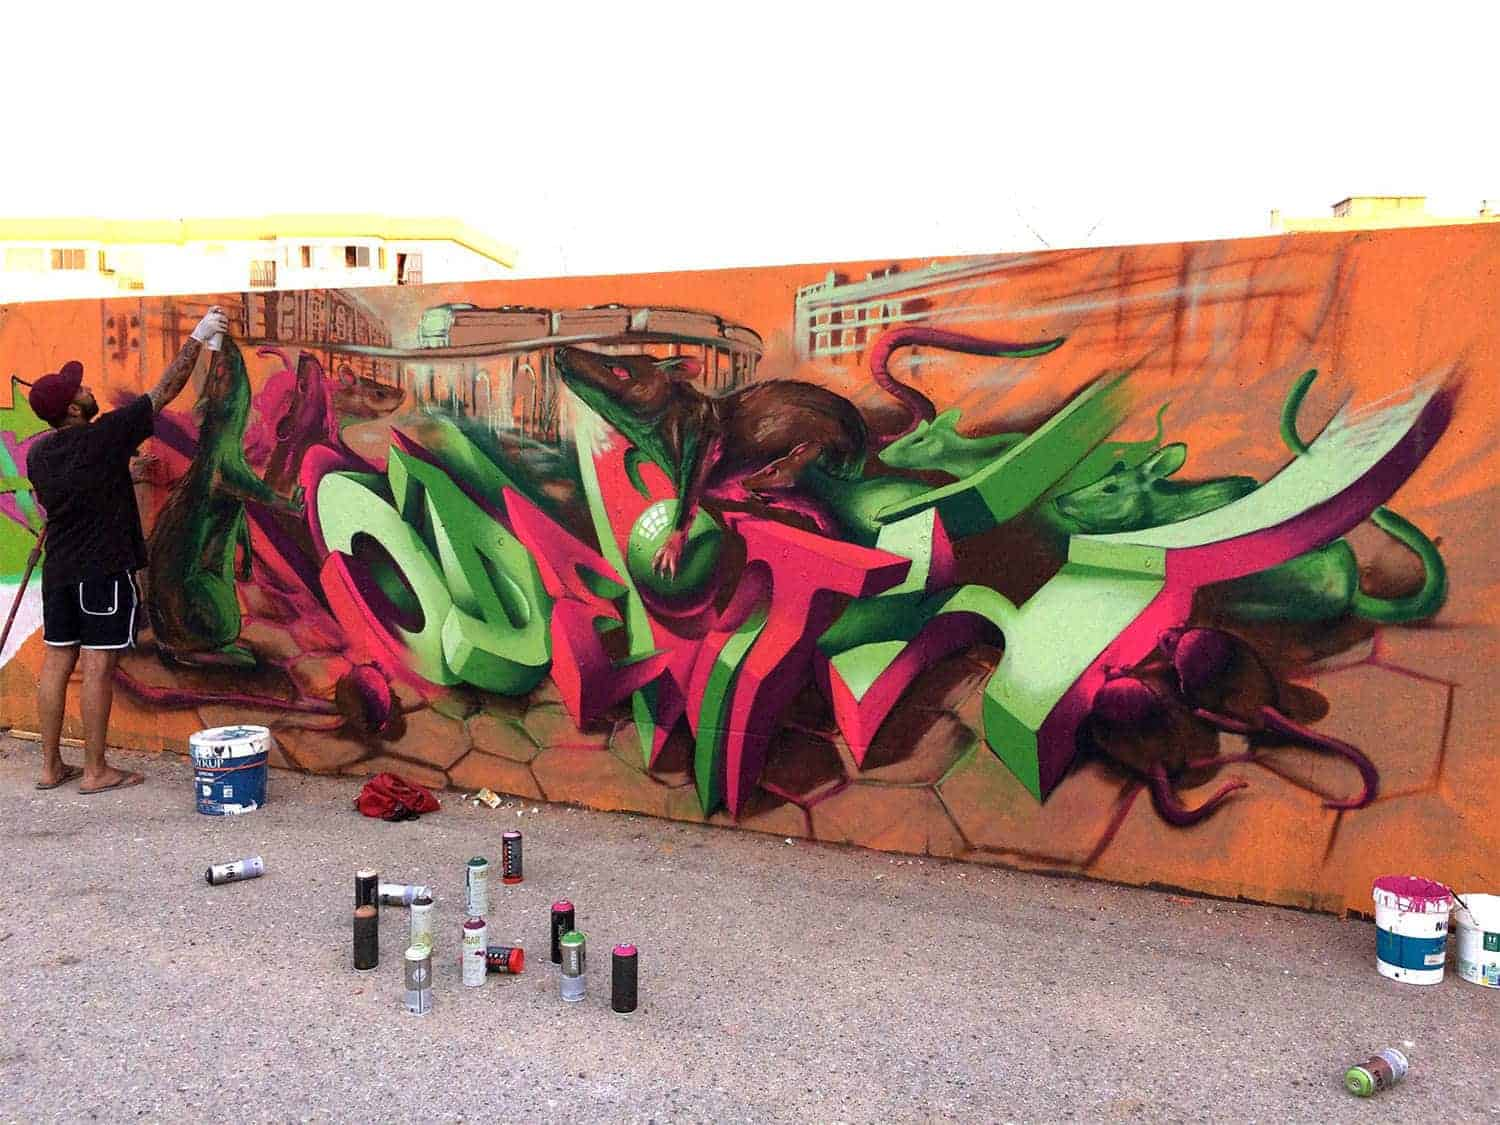 anamorfe graffiti